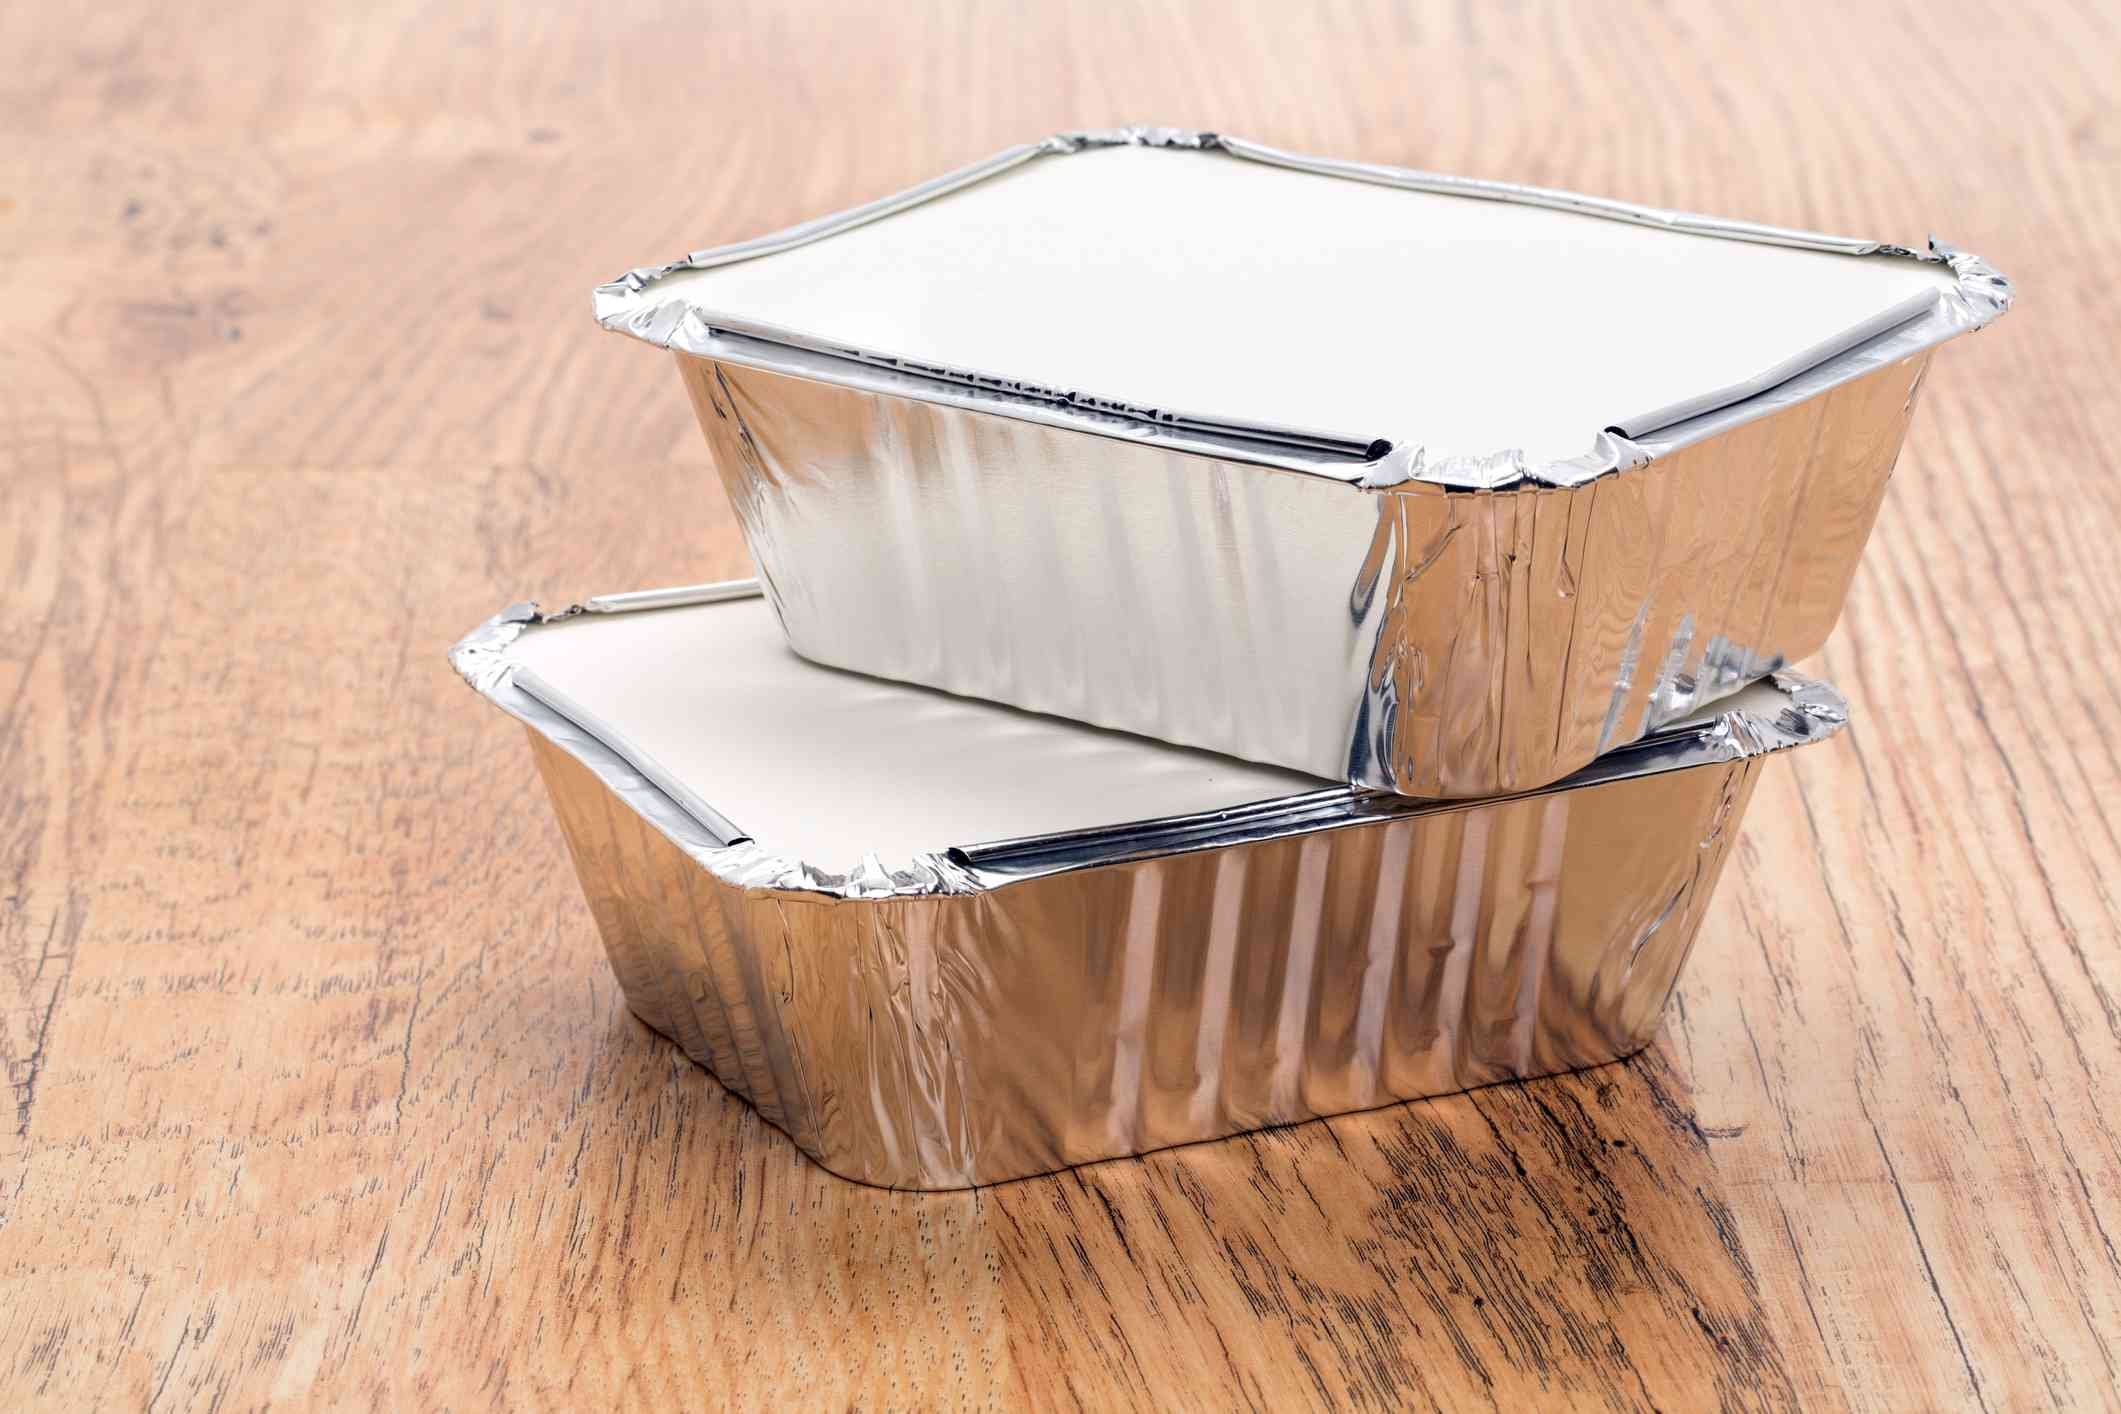 Two stacked aluminum food containers.